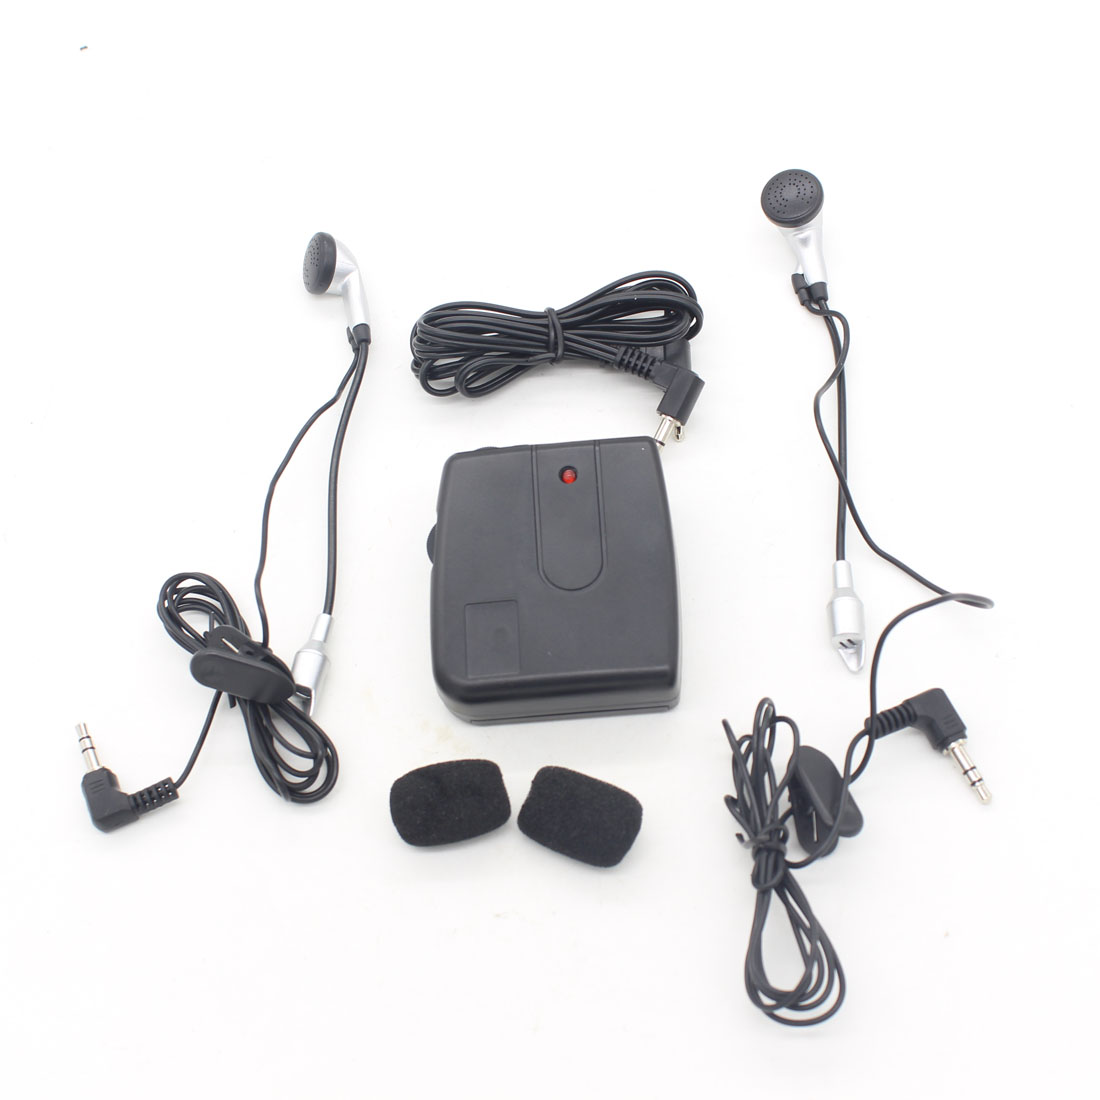 Dongzhen Compact Motorcycle Wired Talkie Portable Headset Intercom Motorcycle Headphone Interphone for Driver Rider